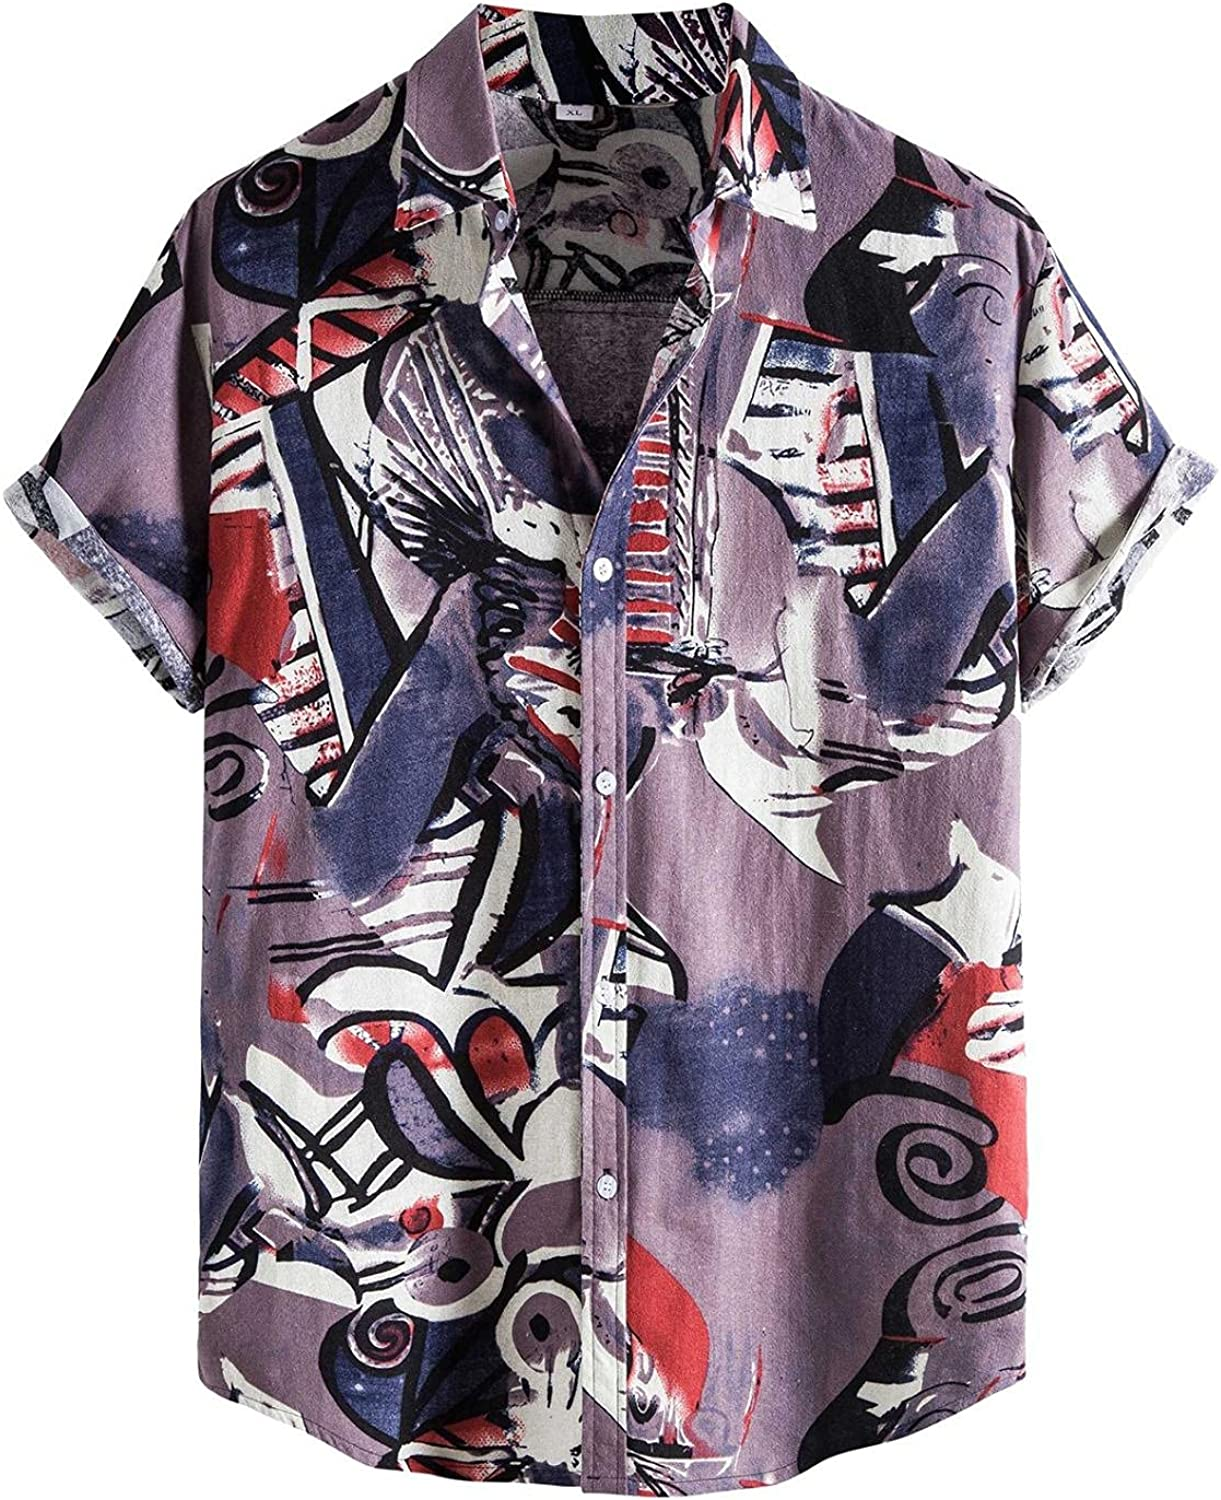 Men's Purple Casual Floral Printed Shirt Single Breasted Short Sleeve Button Turn-Down Collar Shirt Top Blouse